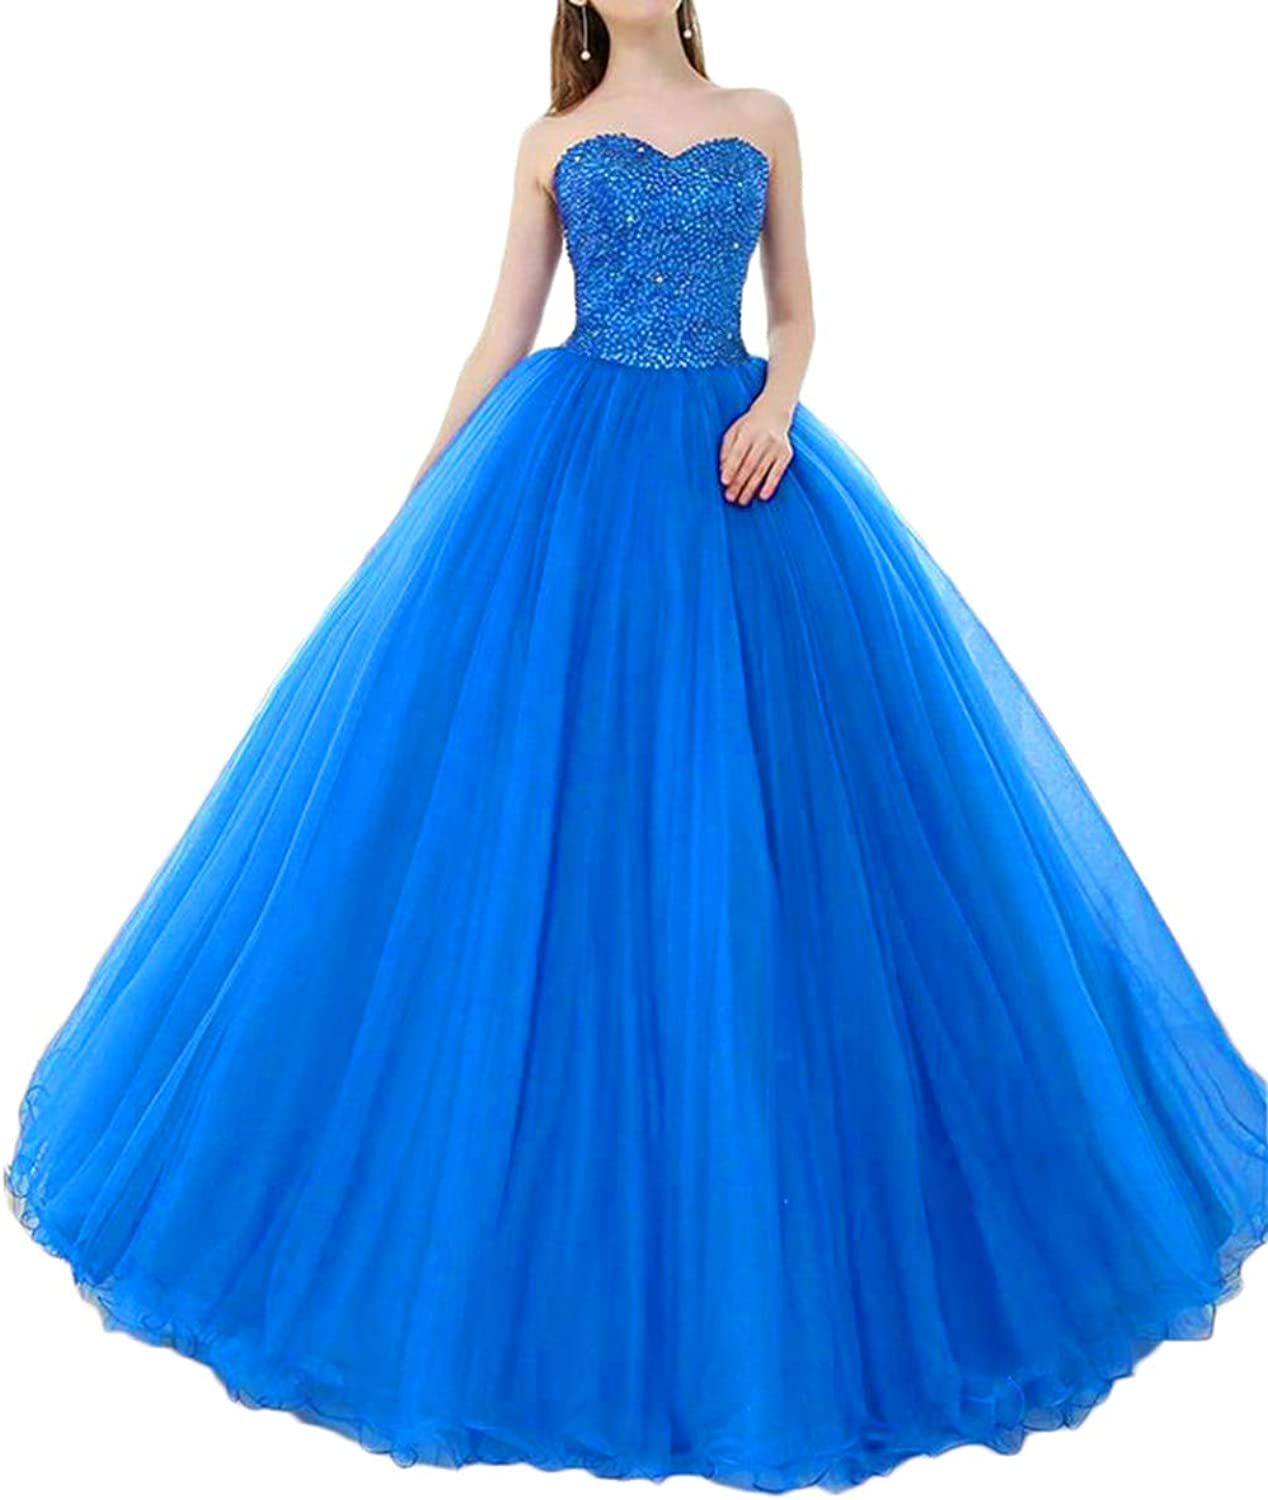 Alilith.Z Sexy Sweetheart Princess Prom Dresses 2019 Beaded Sequins Quinceanera Dresses Ball Gown Evening Gowns for Girls